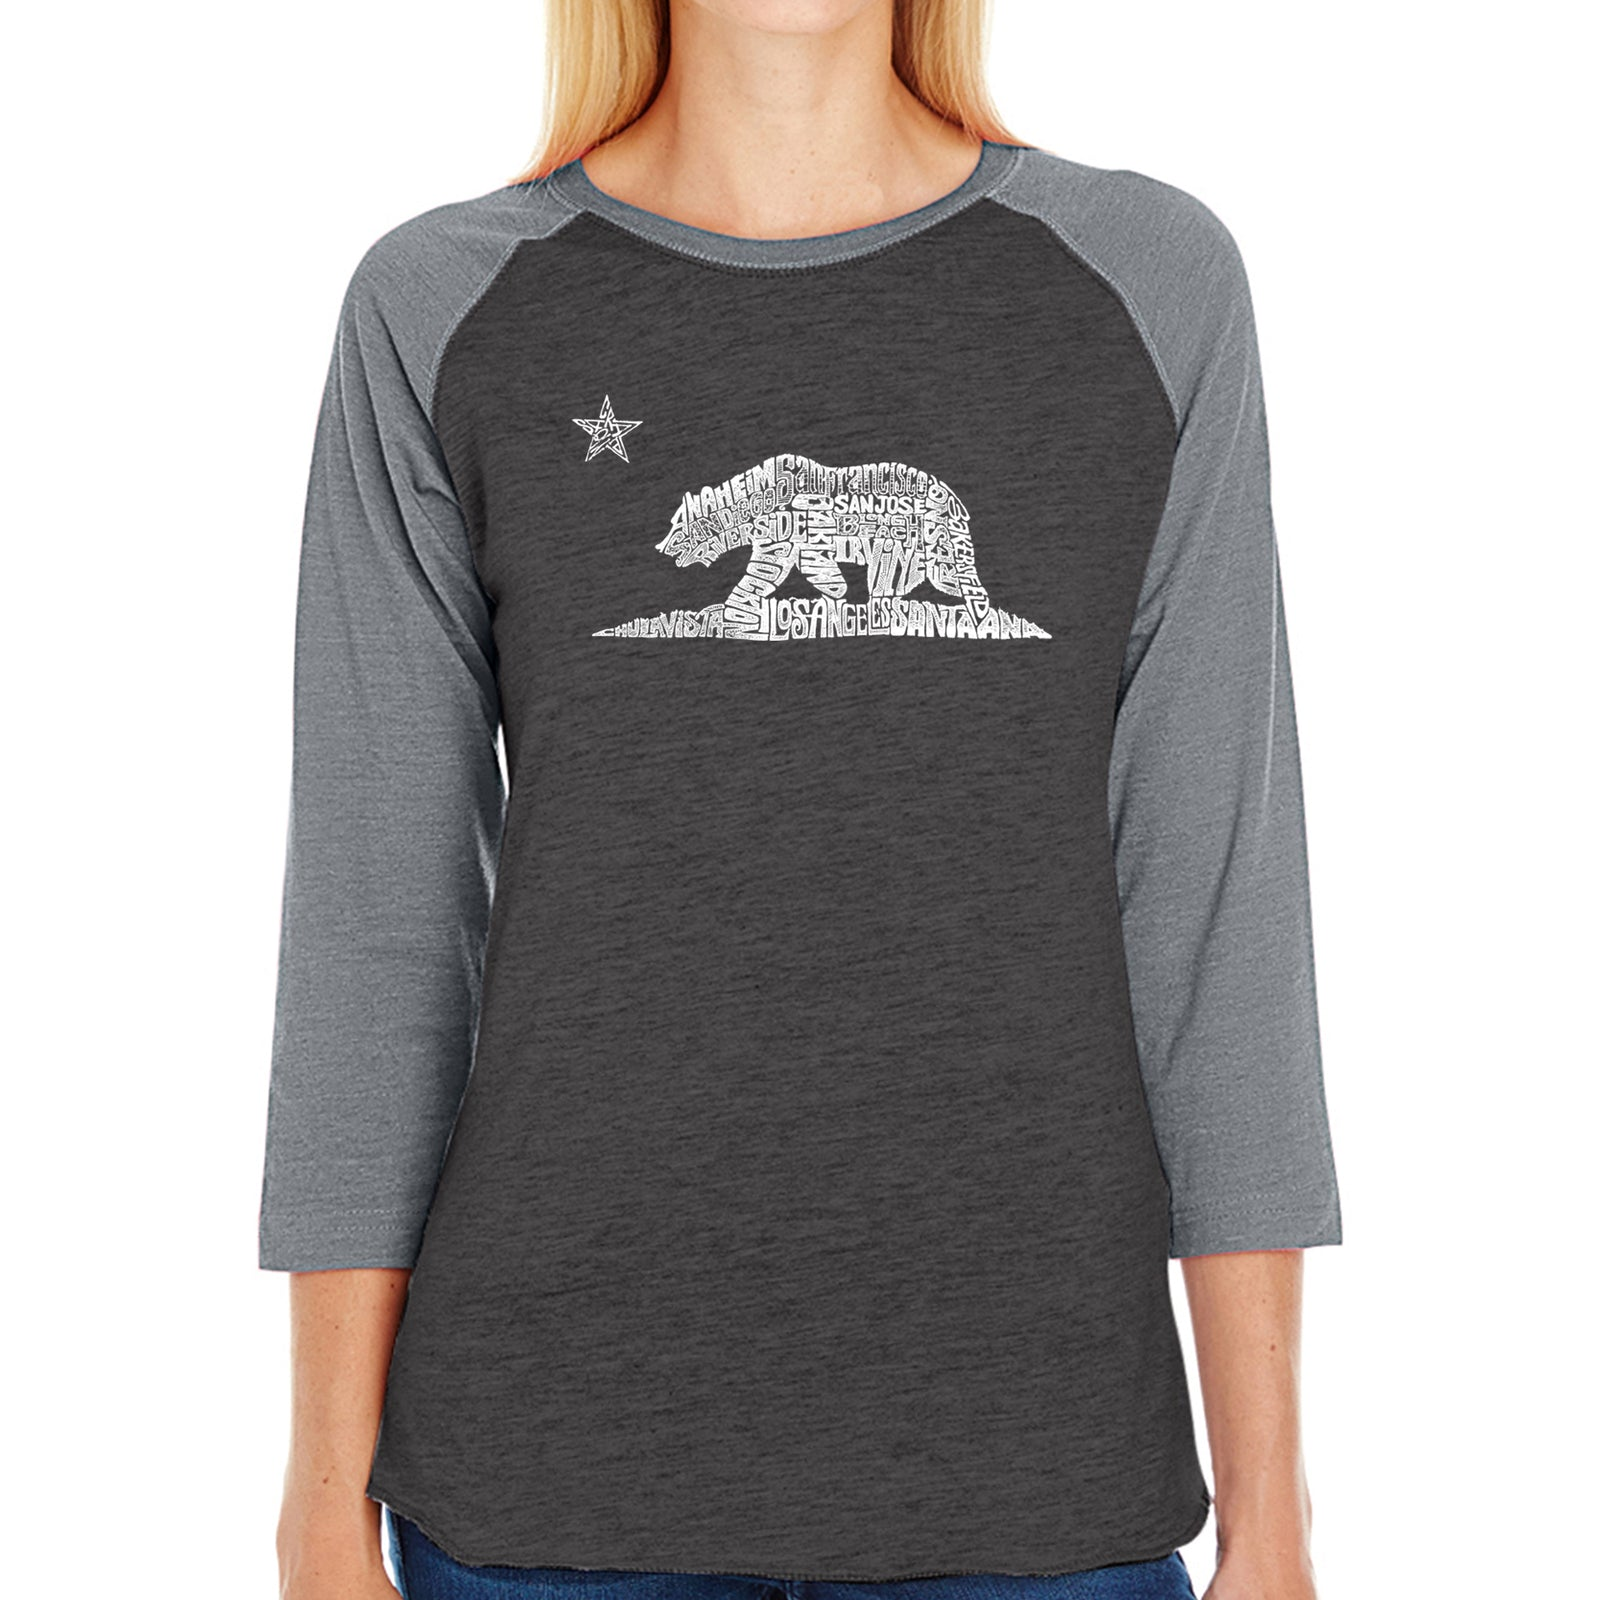 Women's Raglan Baseball Word Art T-shirt - California Bear